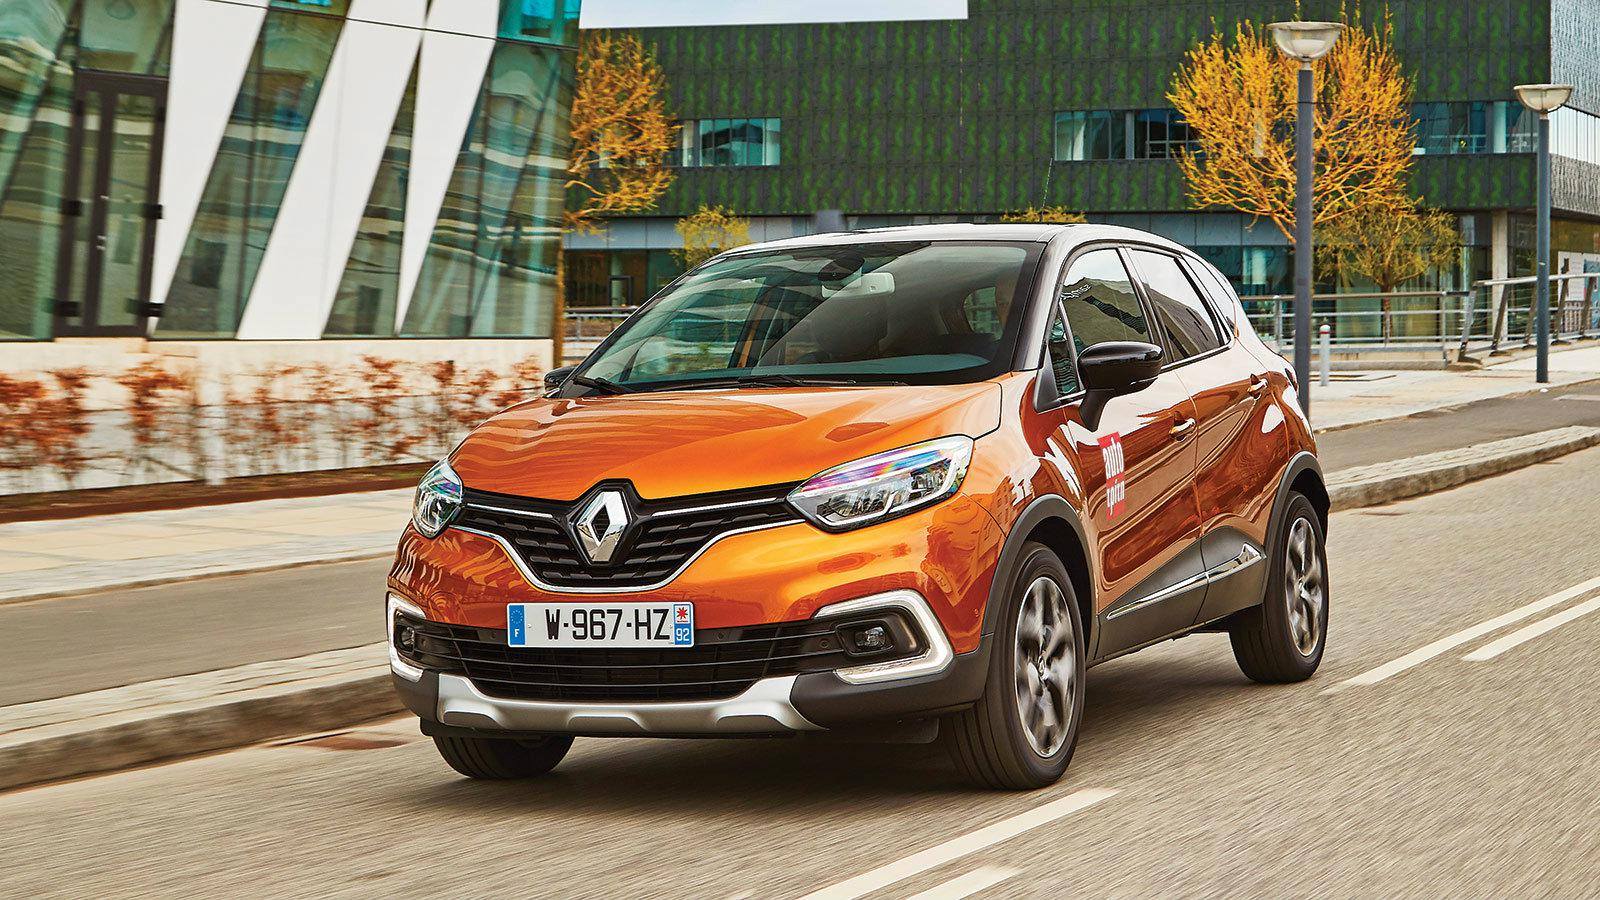 Renault Visu Clio Captur Prix Maroc Wiring Diagram Models Renaults Quality Service Just Few Clicks Away System Collects Dvd Digitally Electrical Electronic Schematics Repair Scarica Limmagine 830